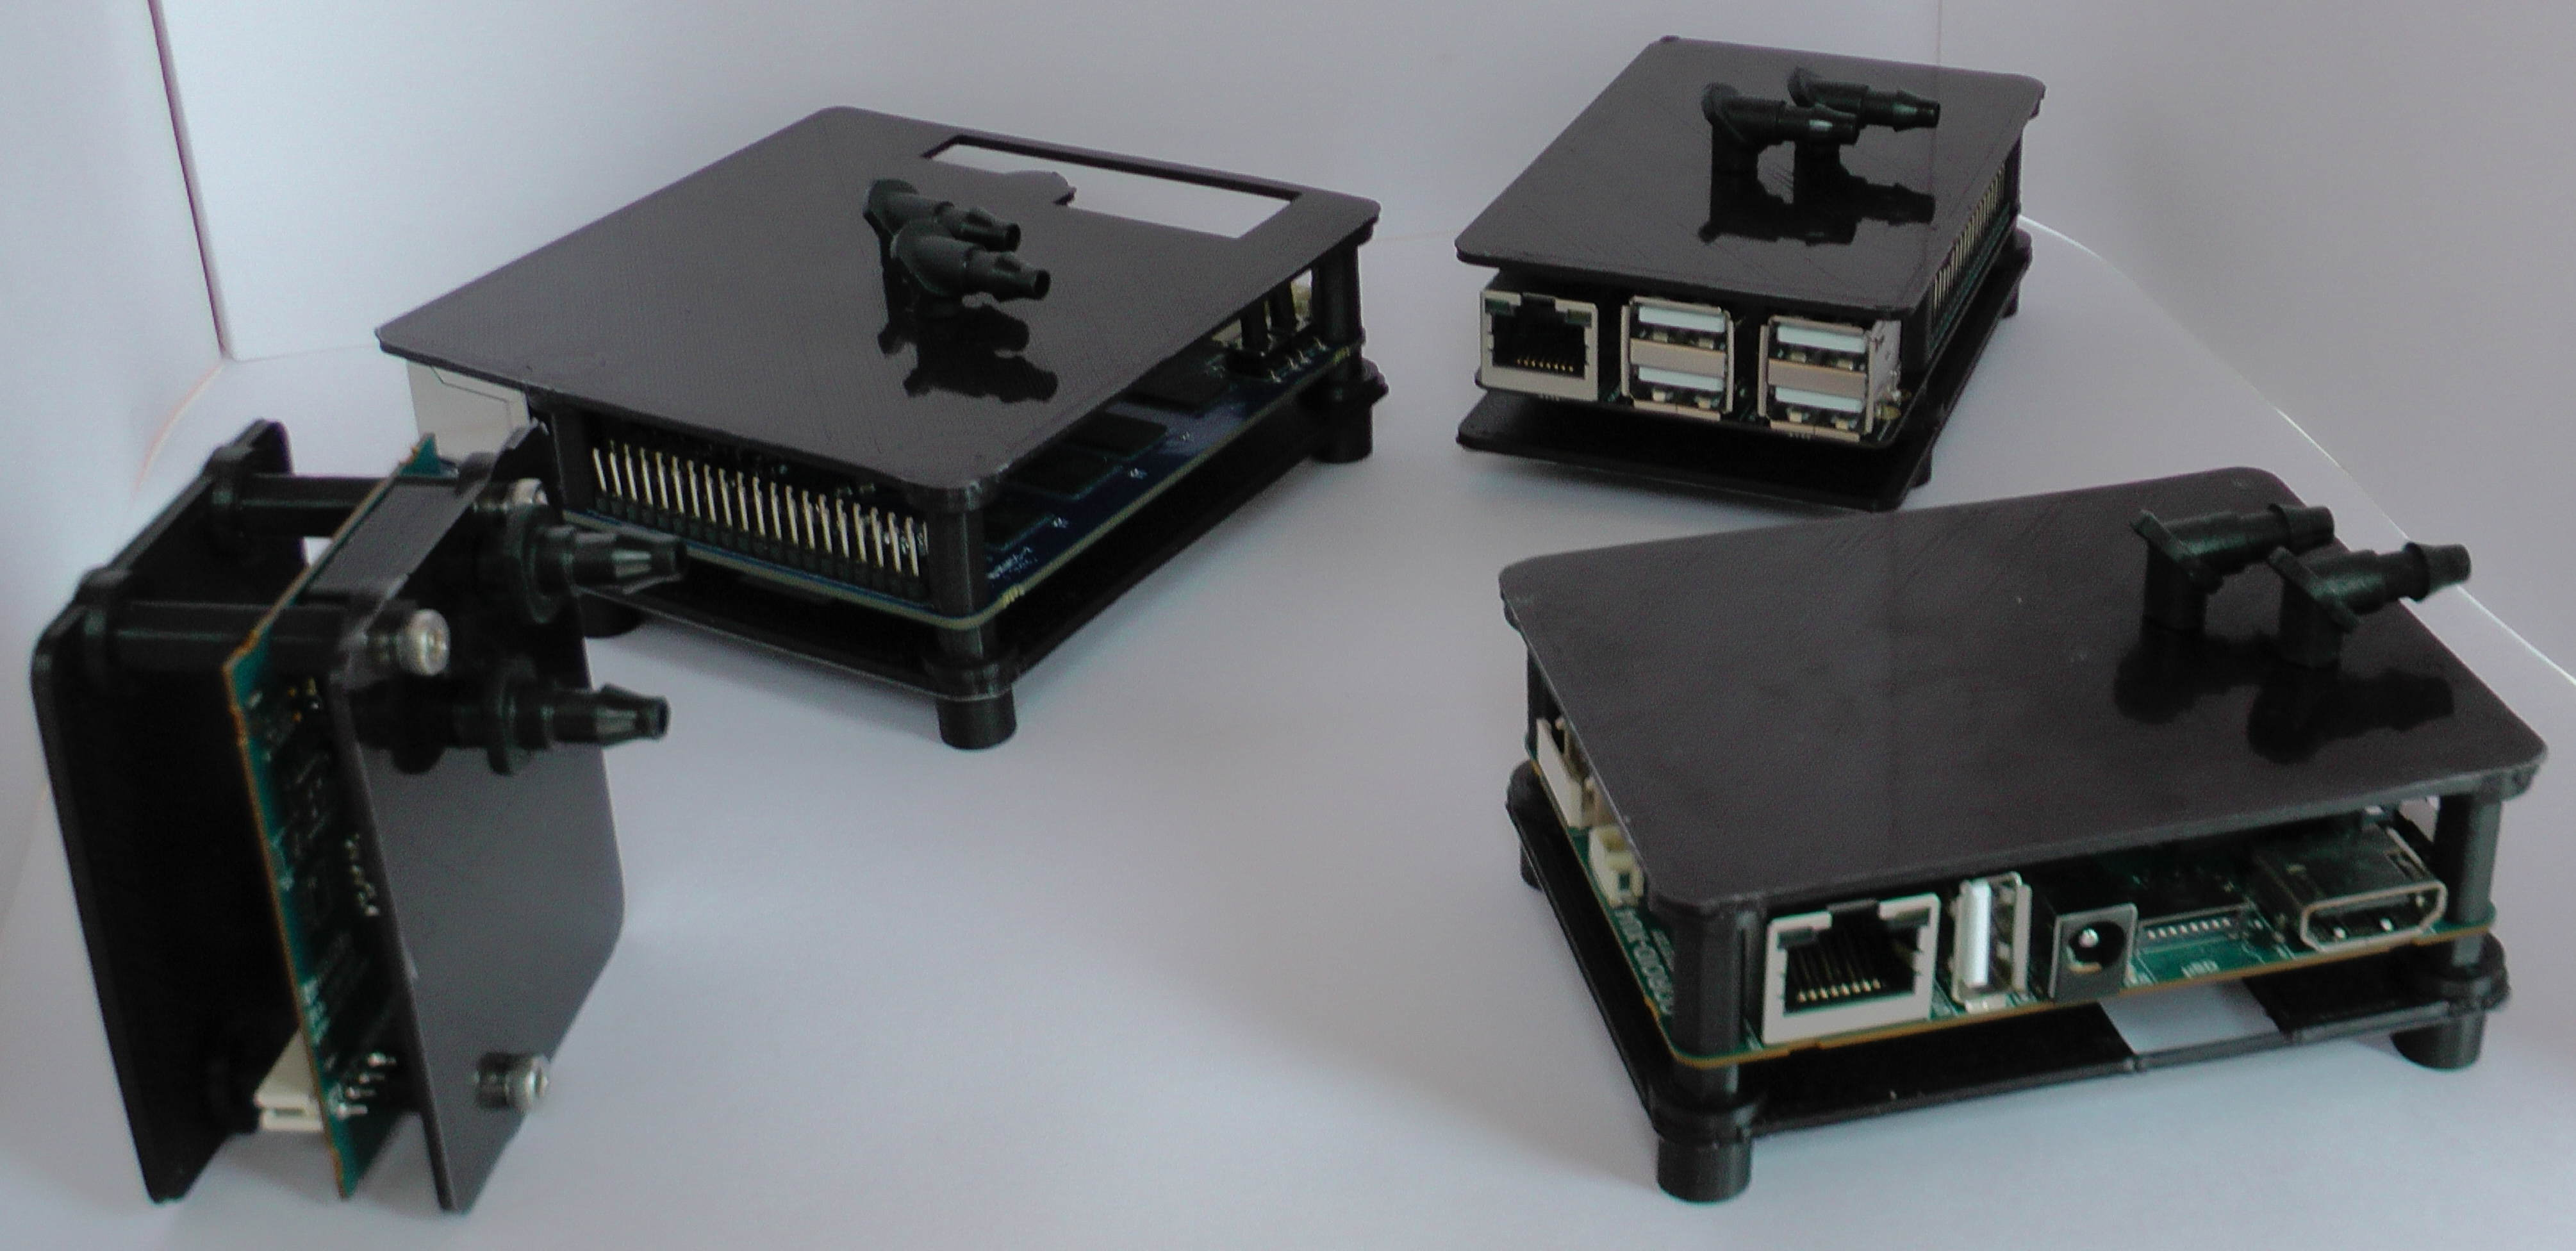 Figure 4 - ODROID Water Cooled Cases (MC1, N1, C2 and XU4)